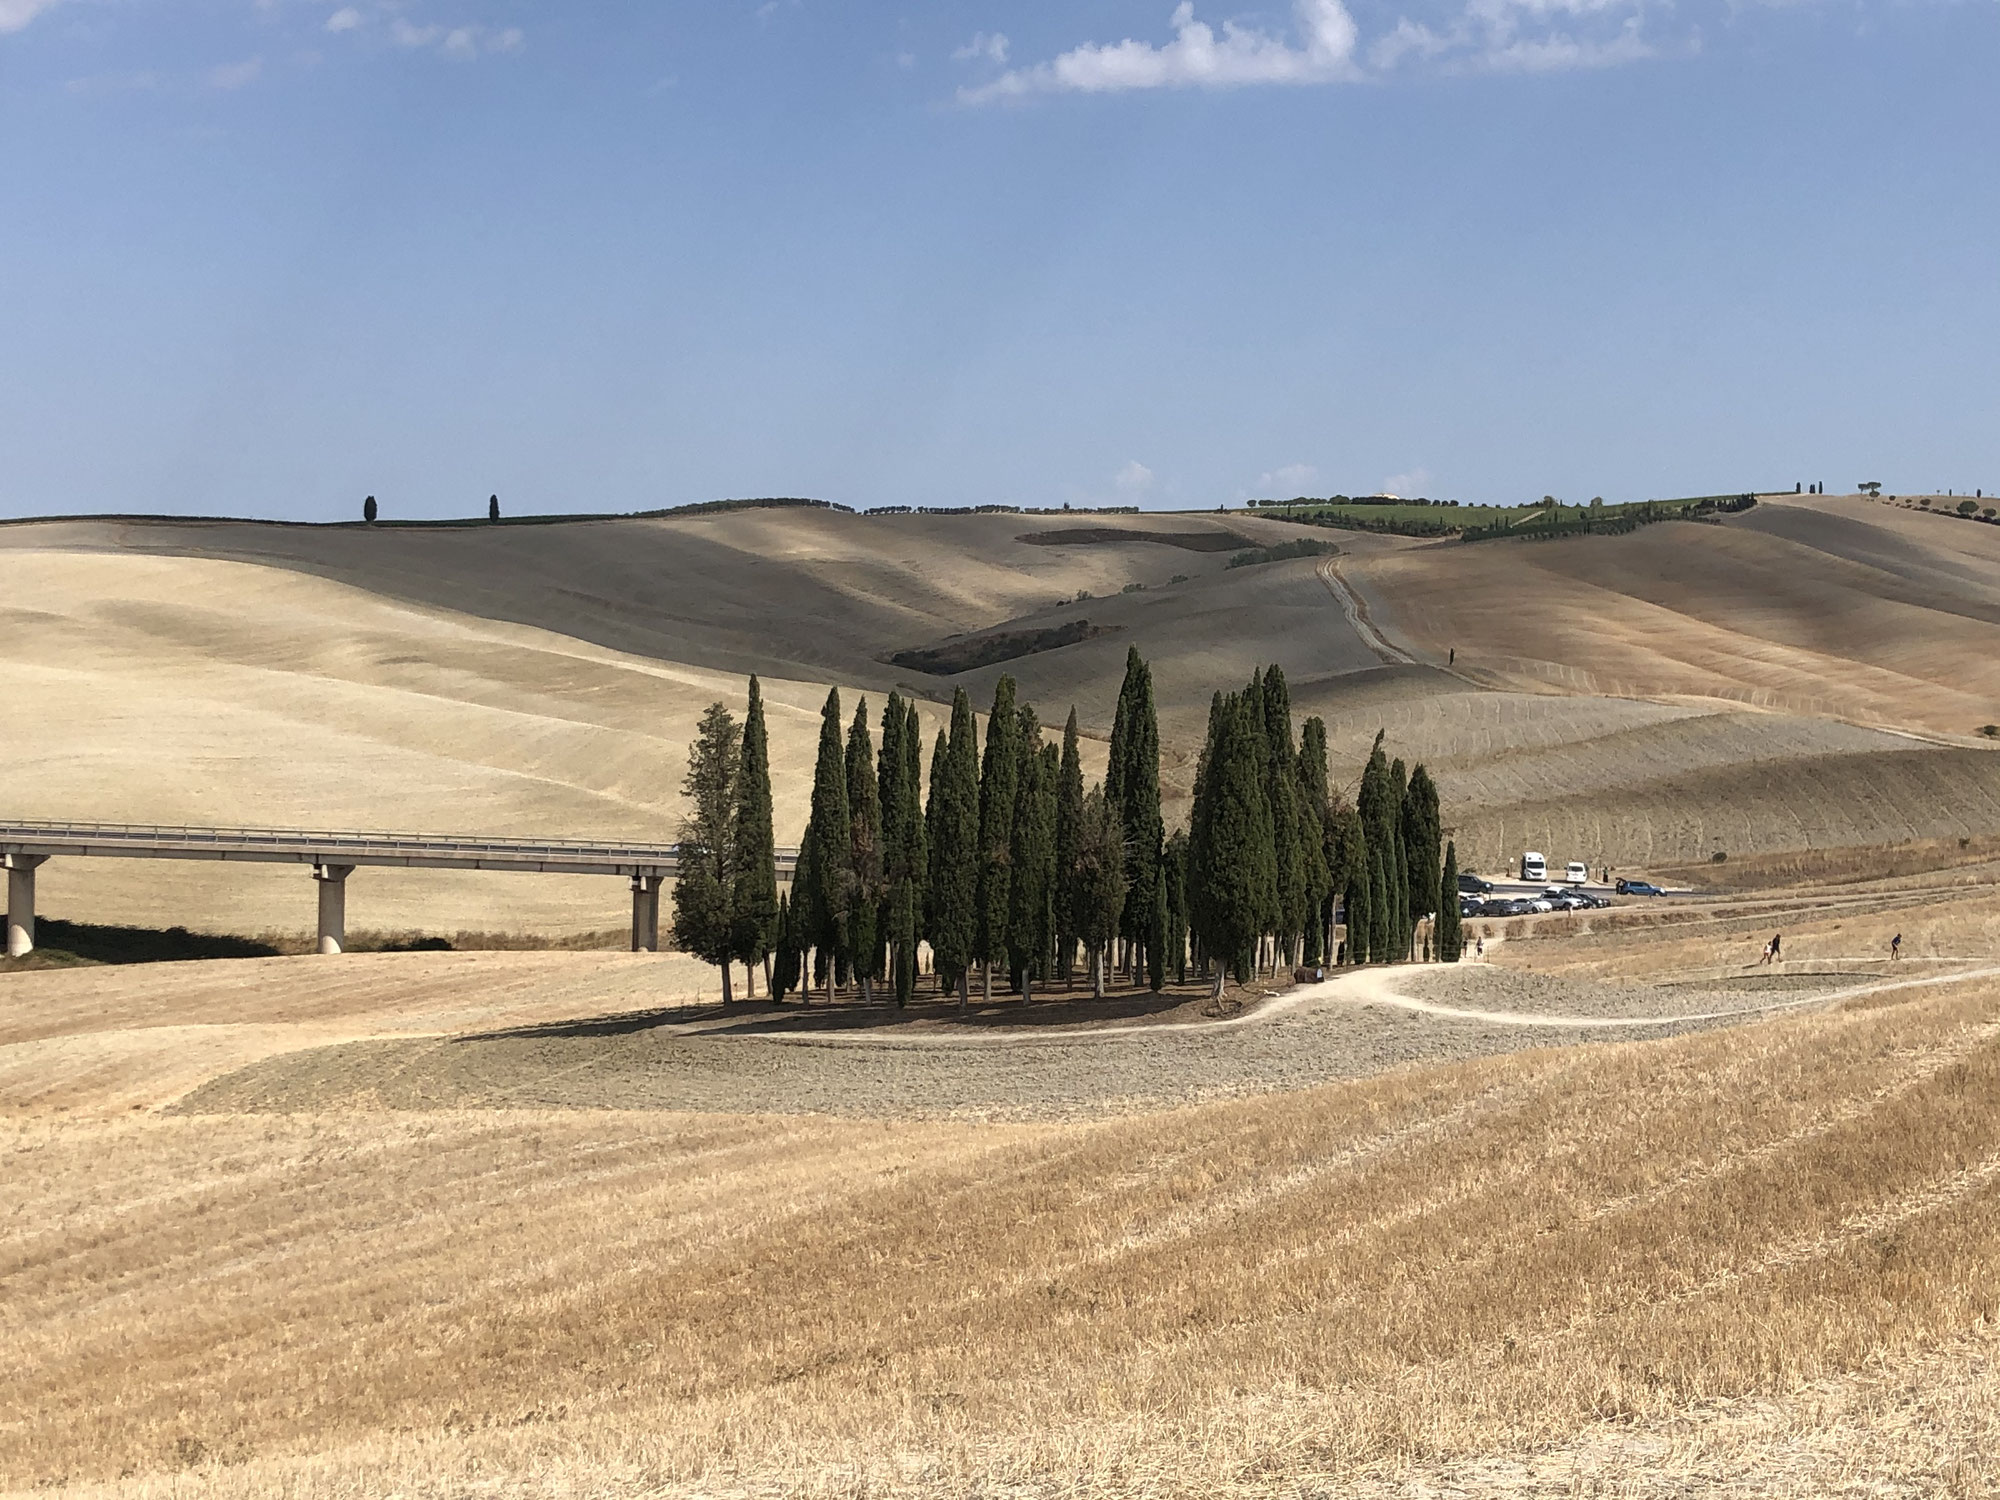 Toscana on the road